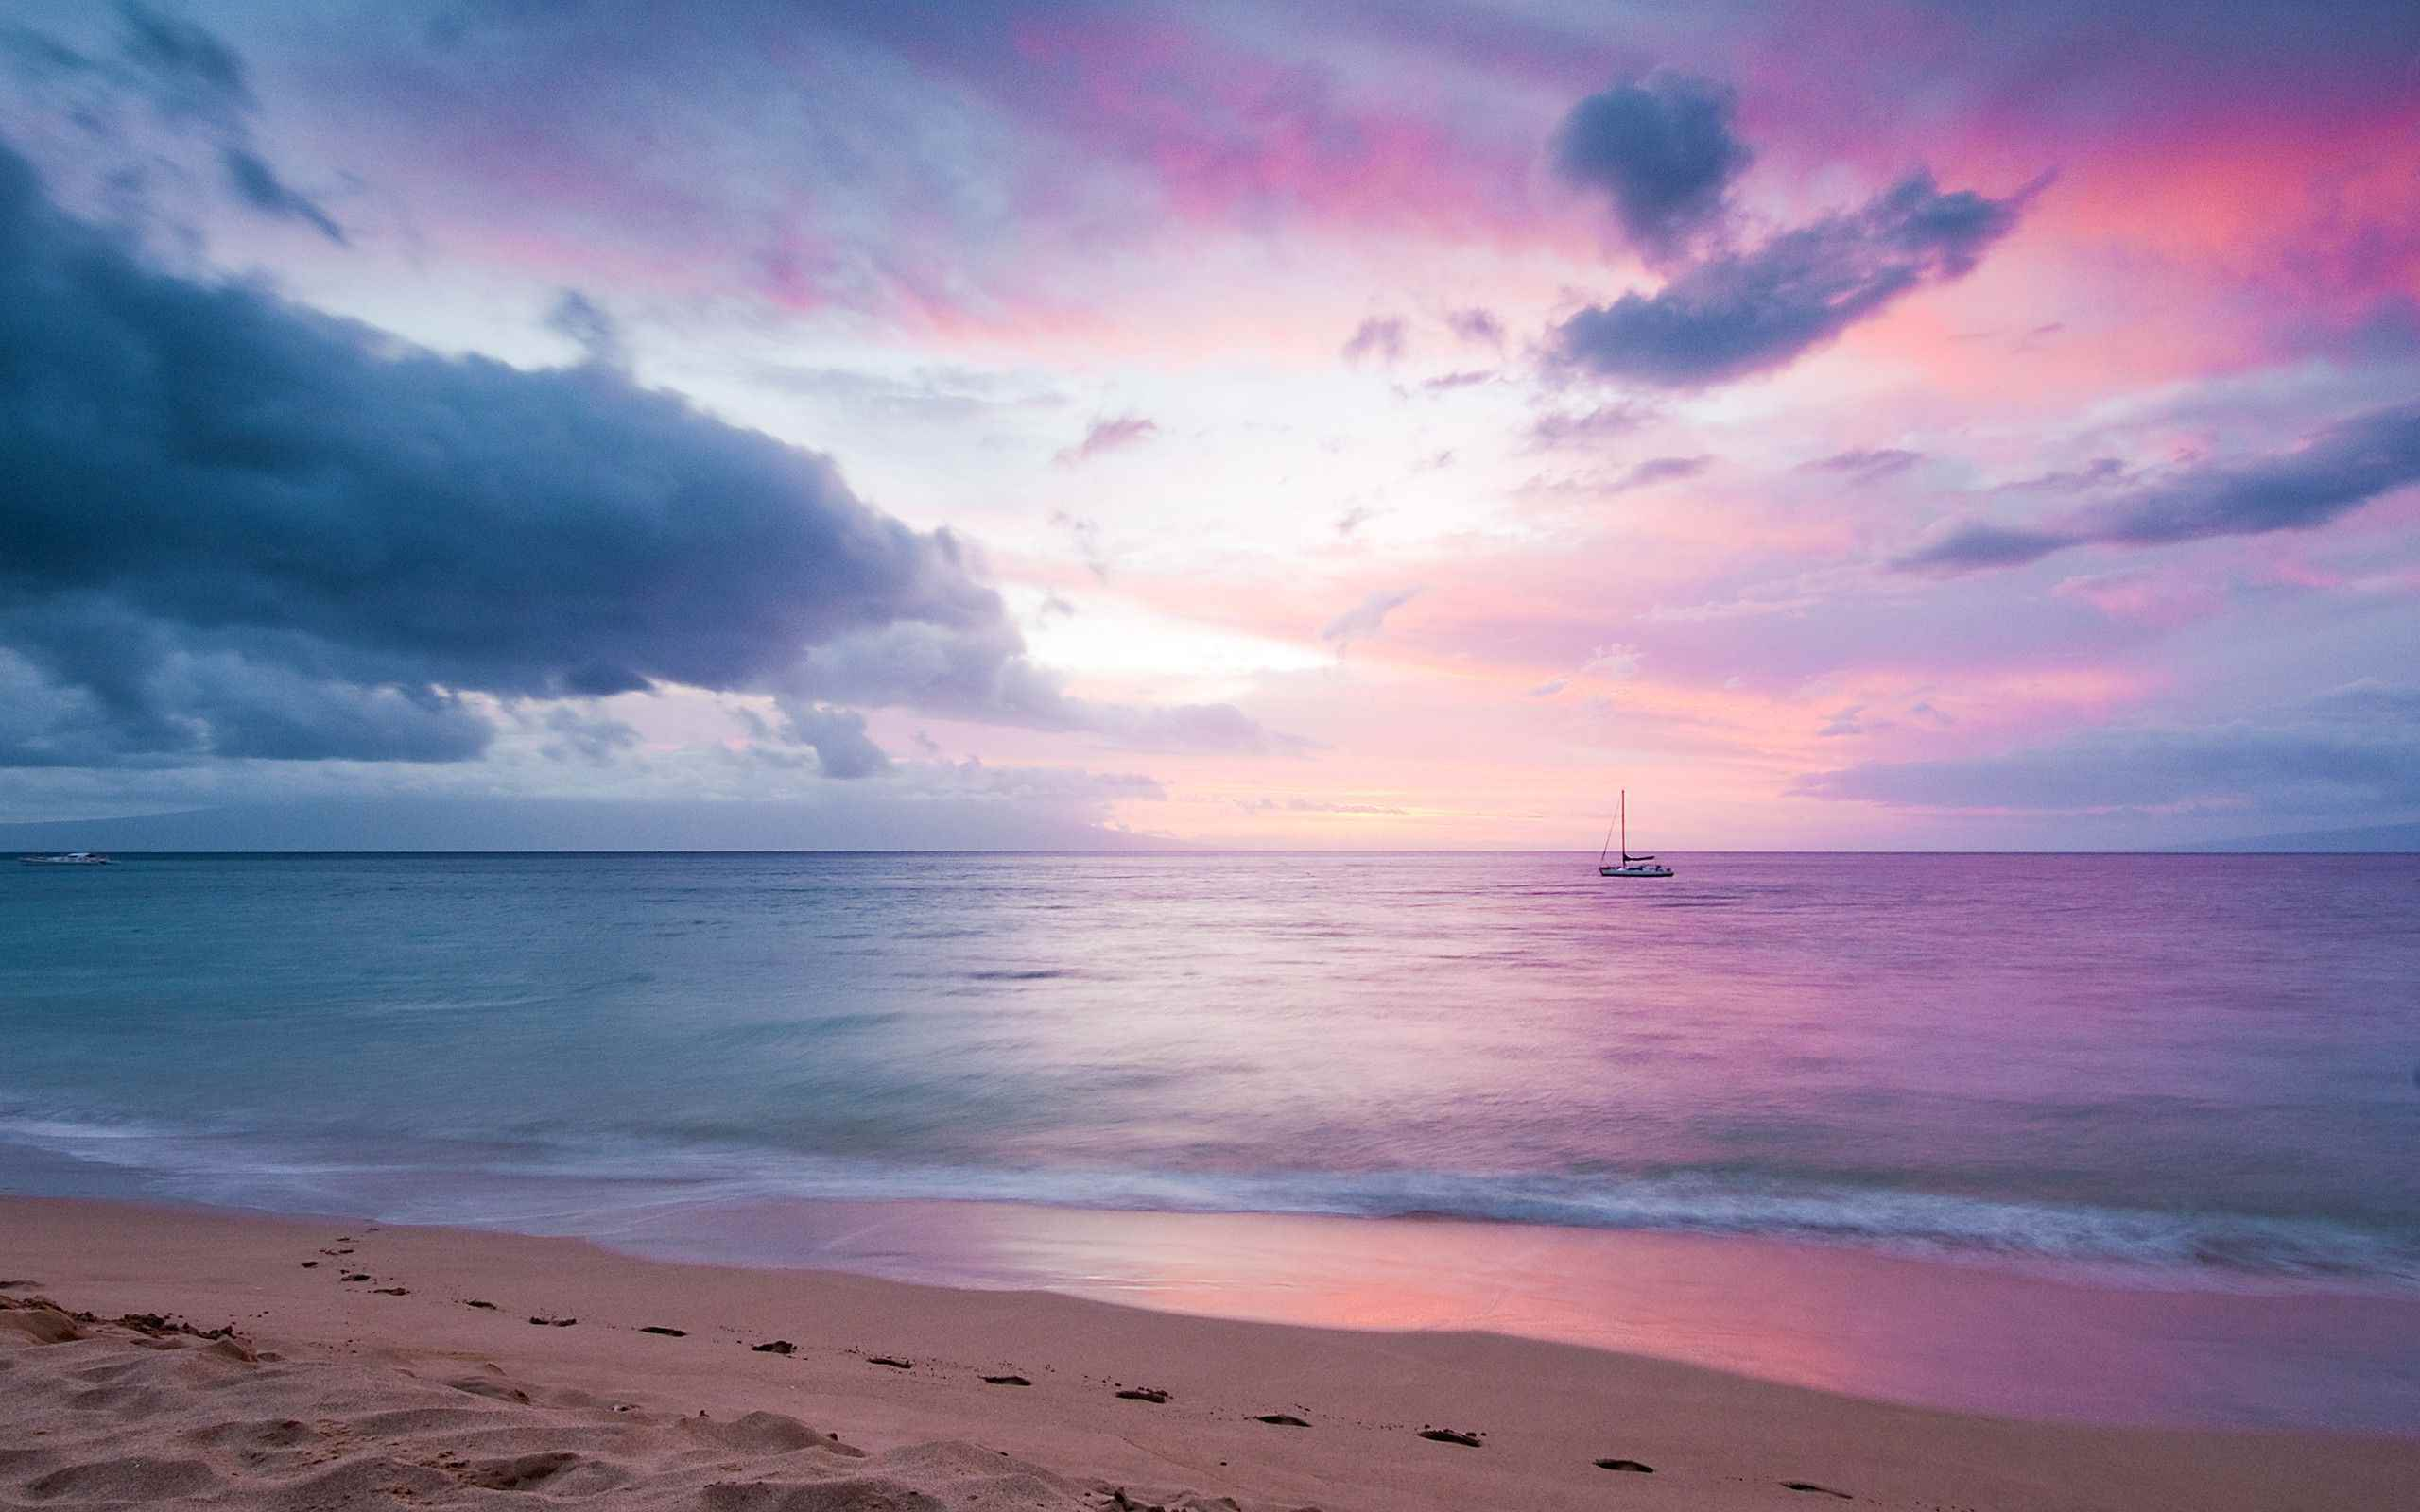 The 13 Best Beach Background Wallpapers of 2019 2560x1600